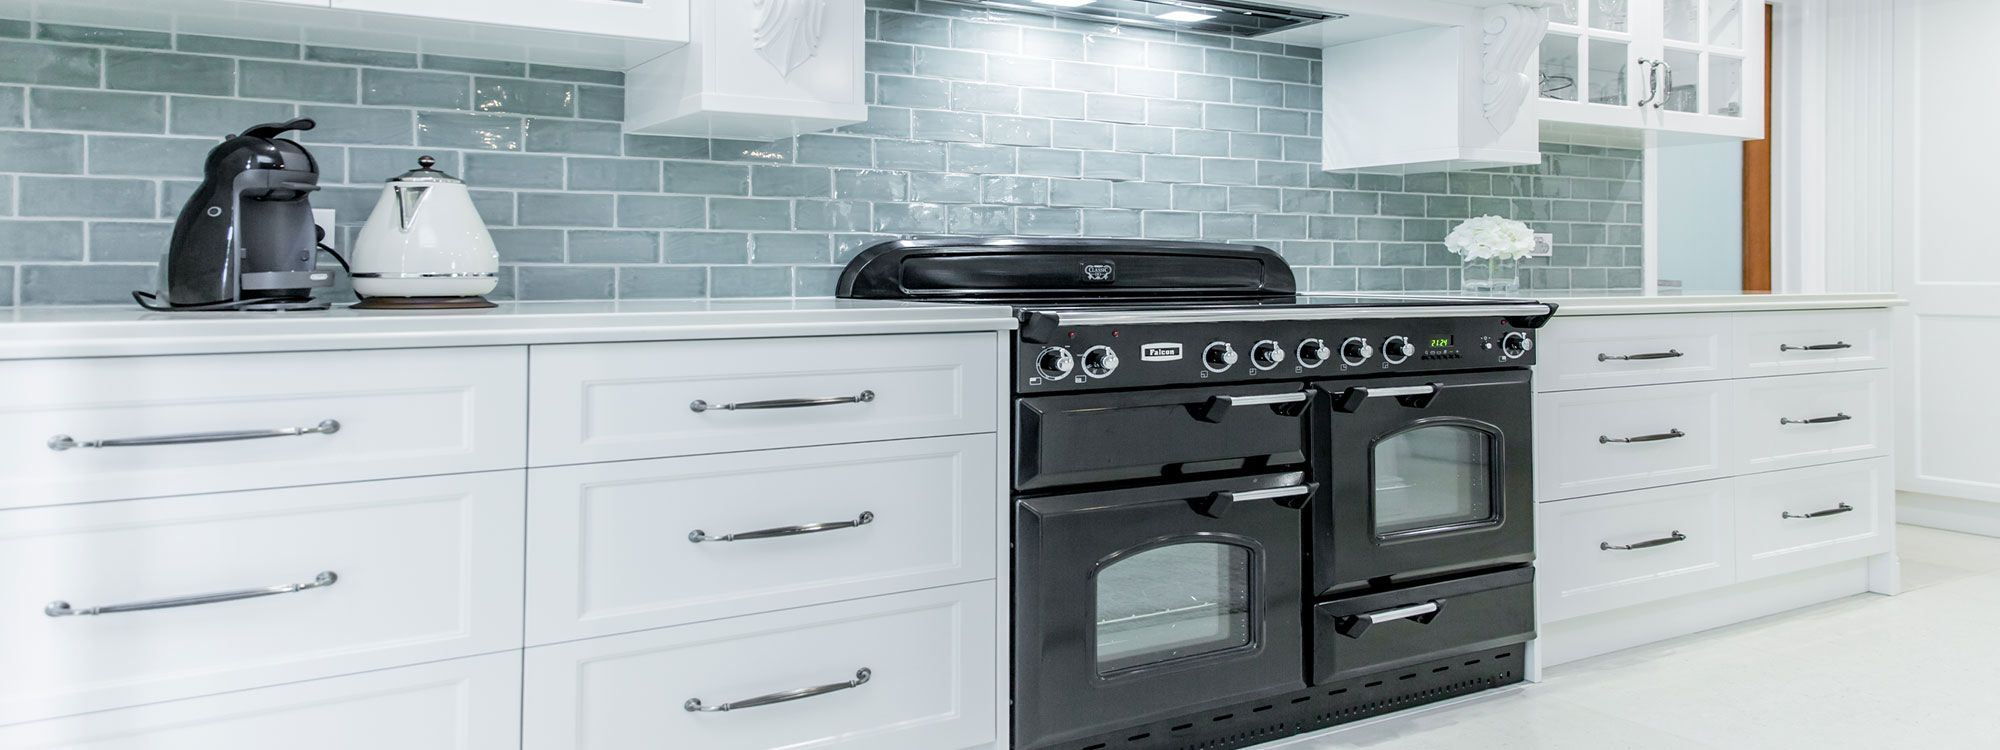 Home - Pace Kitchens - Kitchen Renovations Sydney, Kitchens Hawkesbury